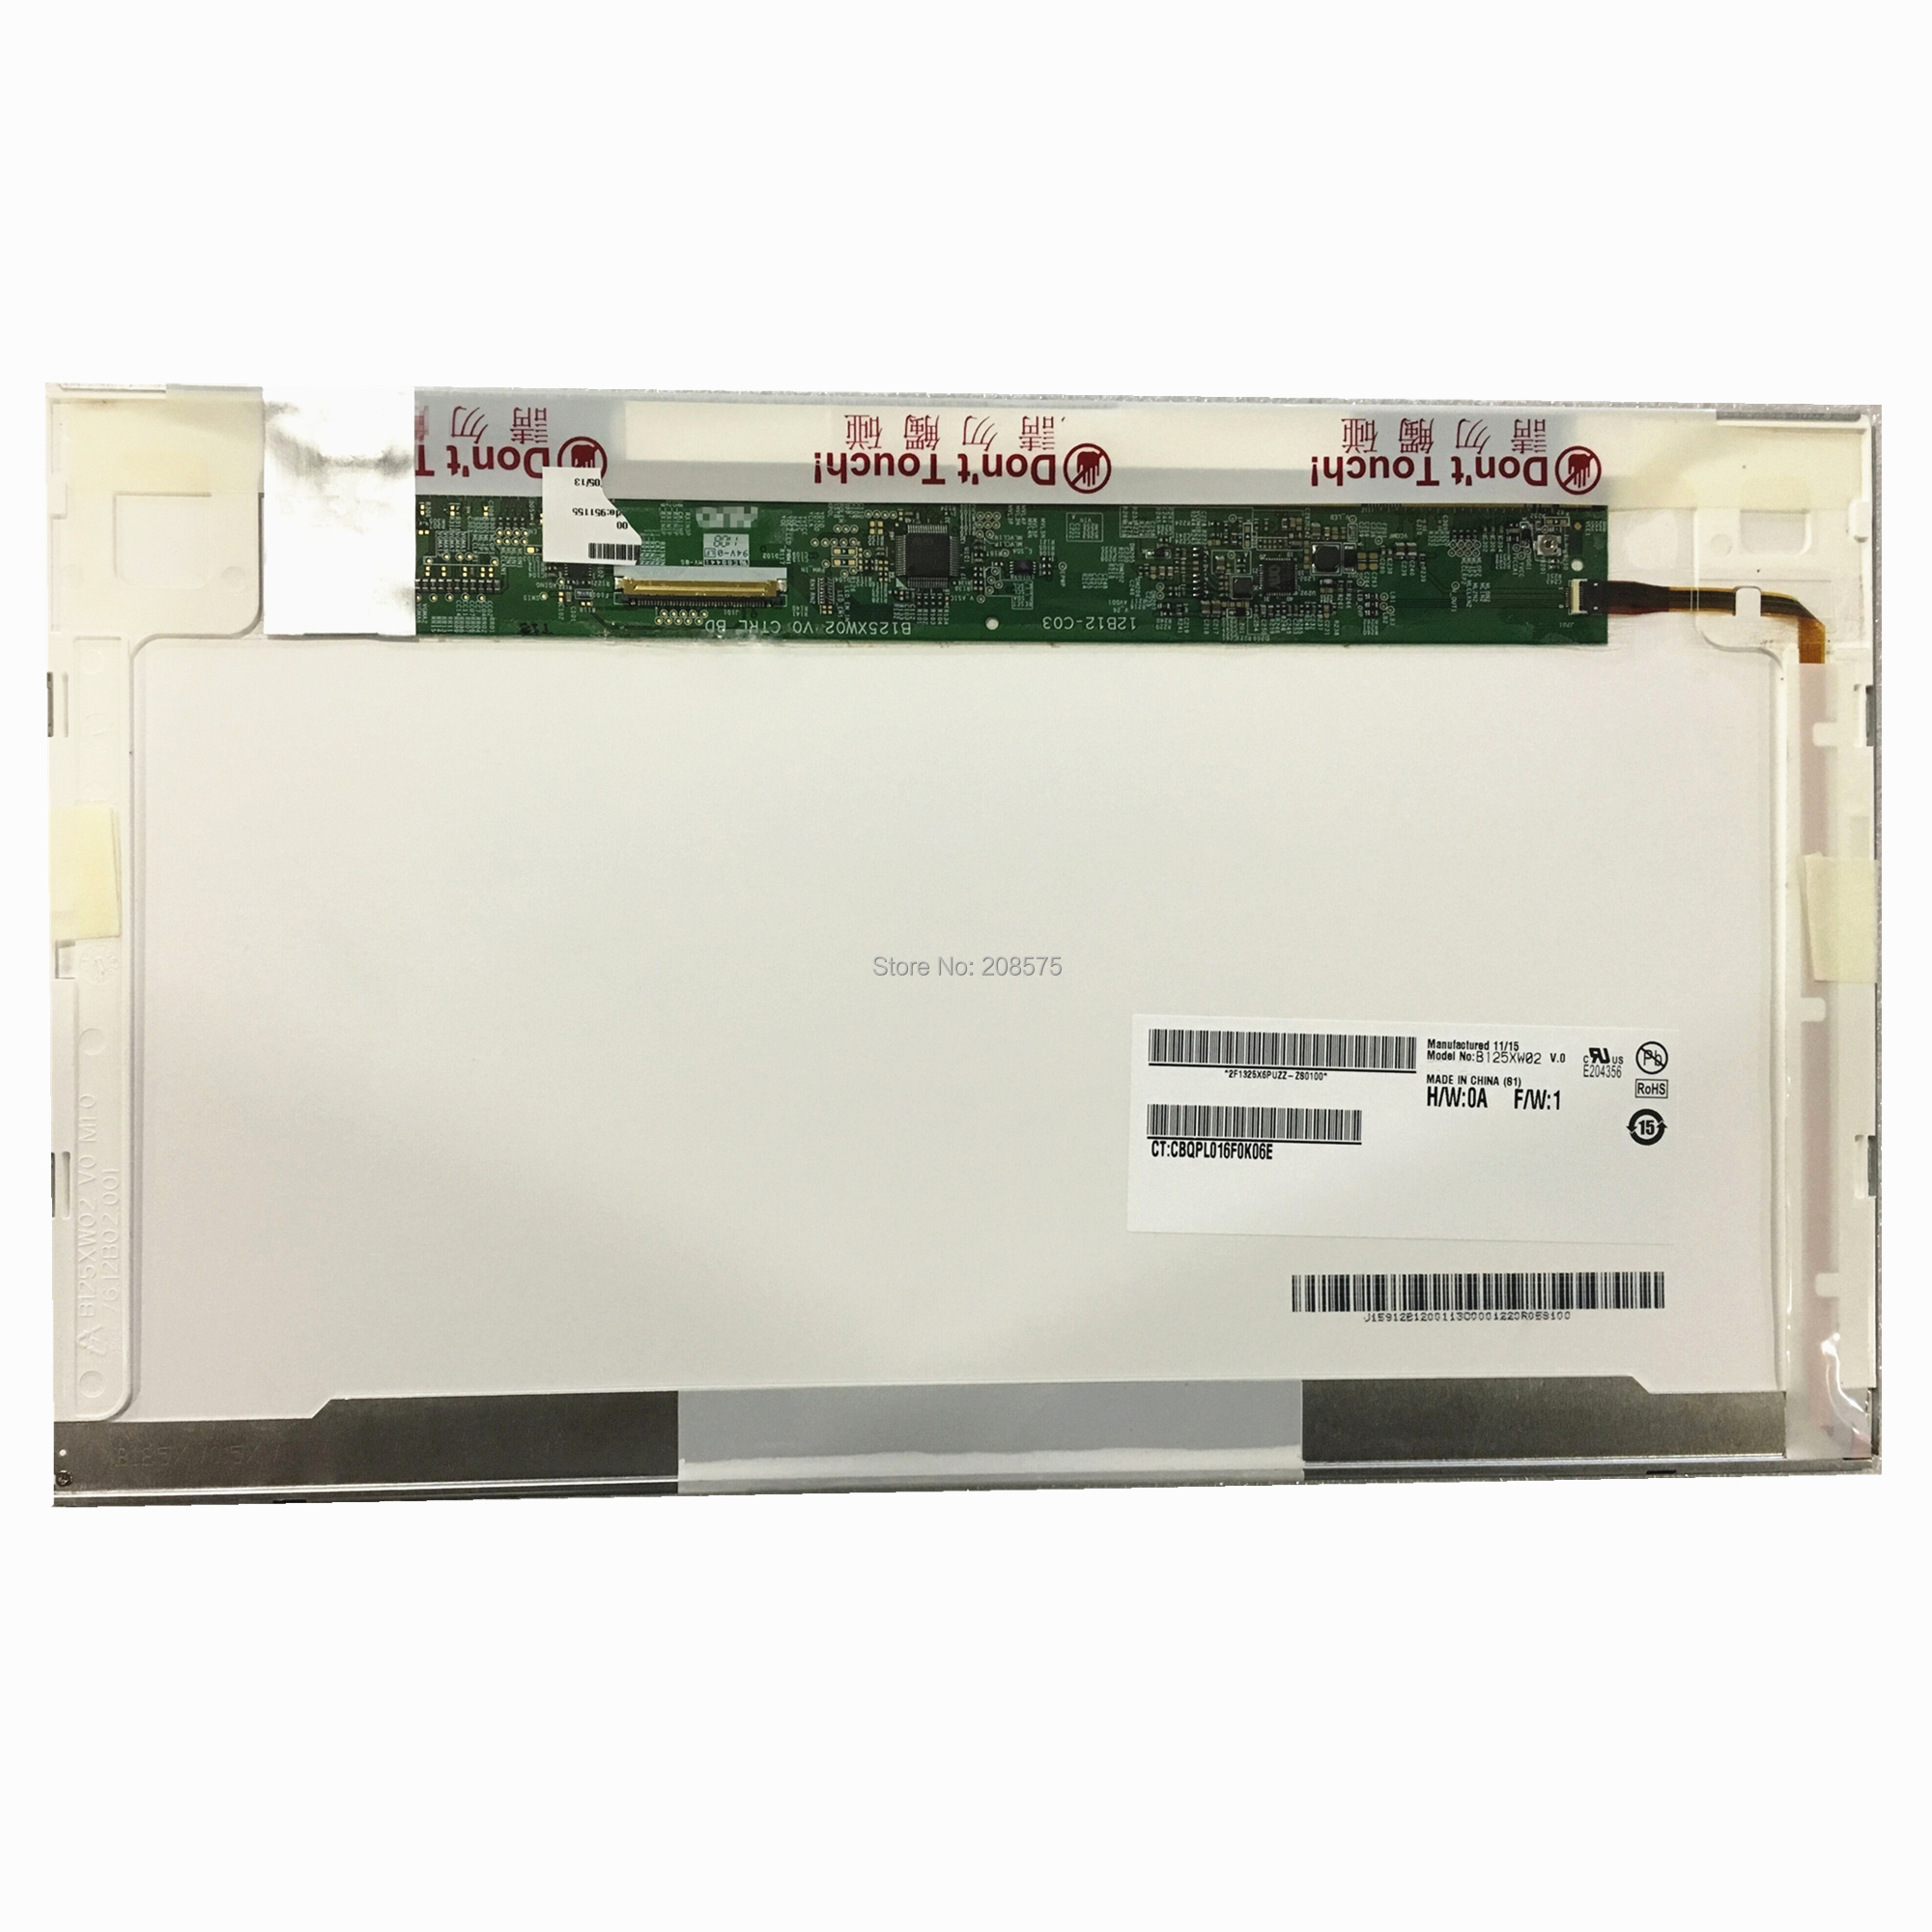 Free shipping B125XW02 V.0 LTN125AT02 LP125WH1 For <font><b>HP</b></font> 2560p <font><b>2570p</b></font> Laptop <font><b>Lcd</b></font> Screen 1366*768 40pin image